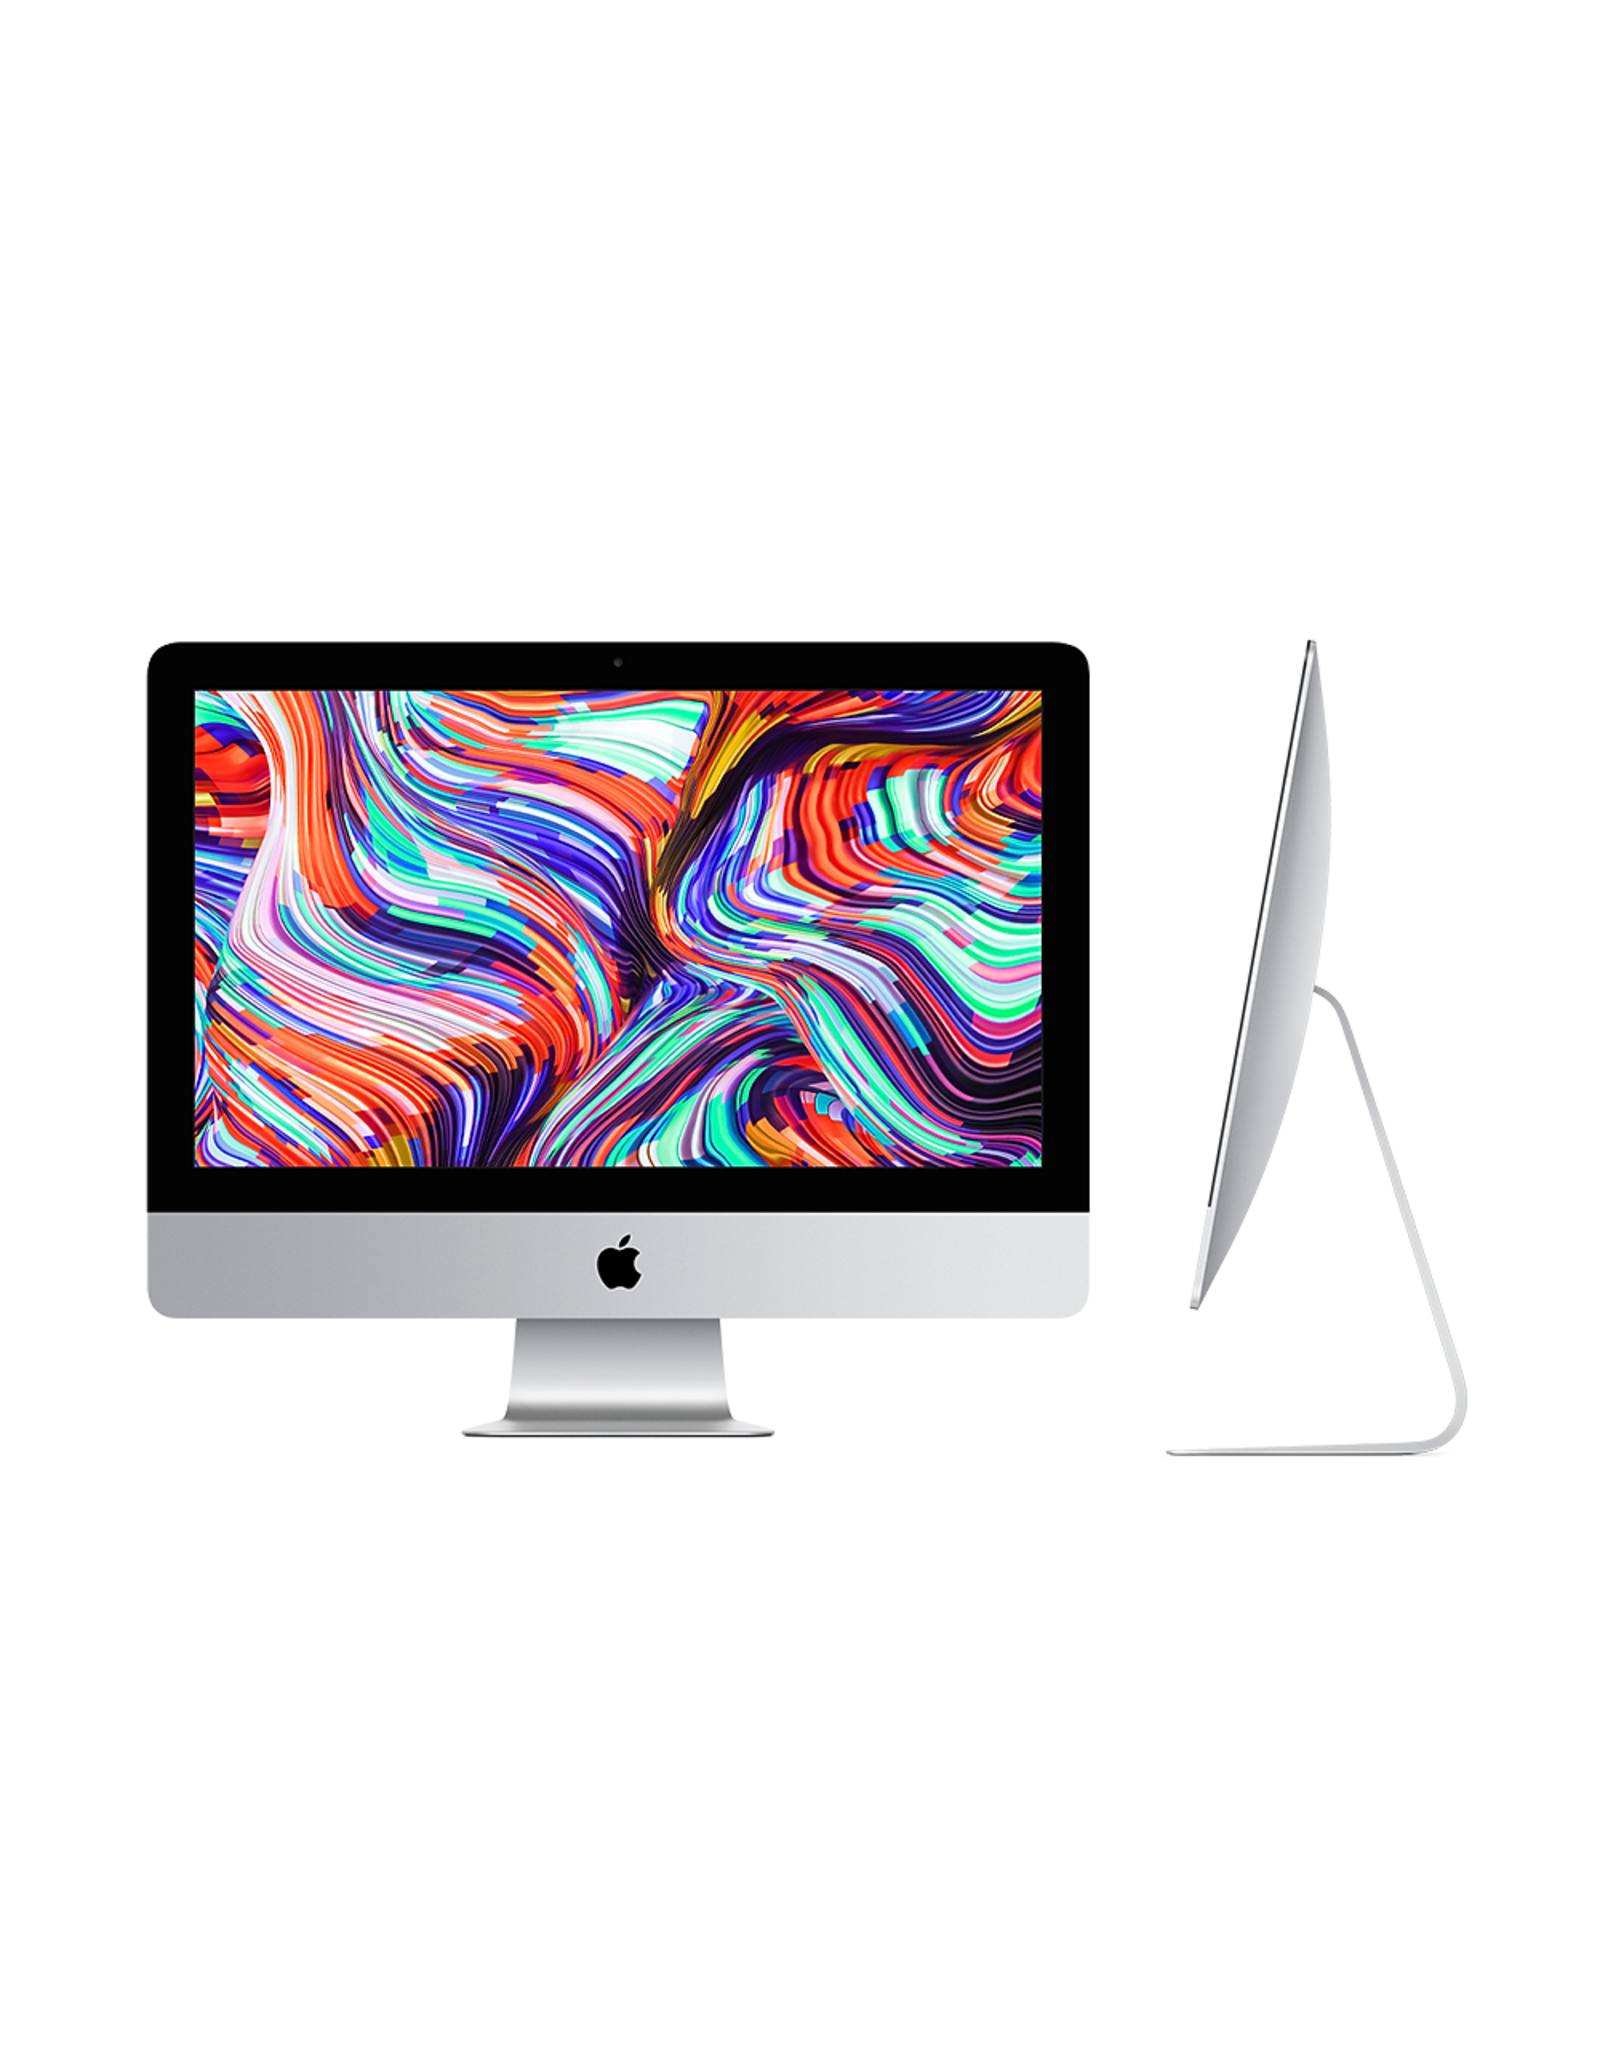 Apple Inst. (Premium) 21.5-inch iMac with Retina 4K Display and 3-Year AppleCare+